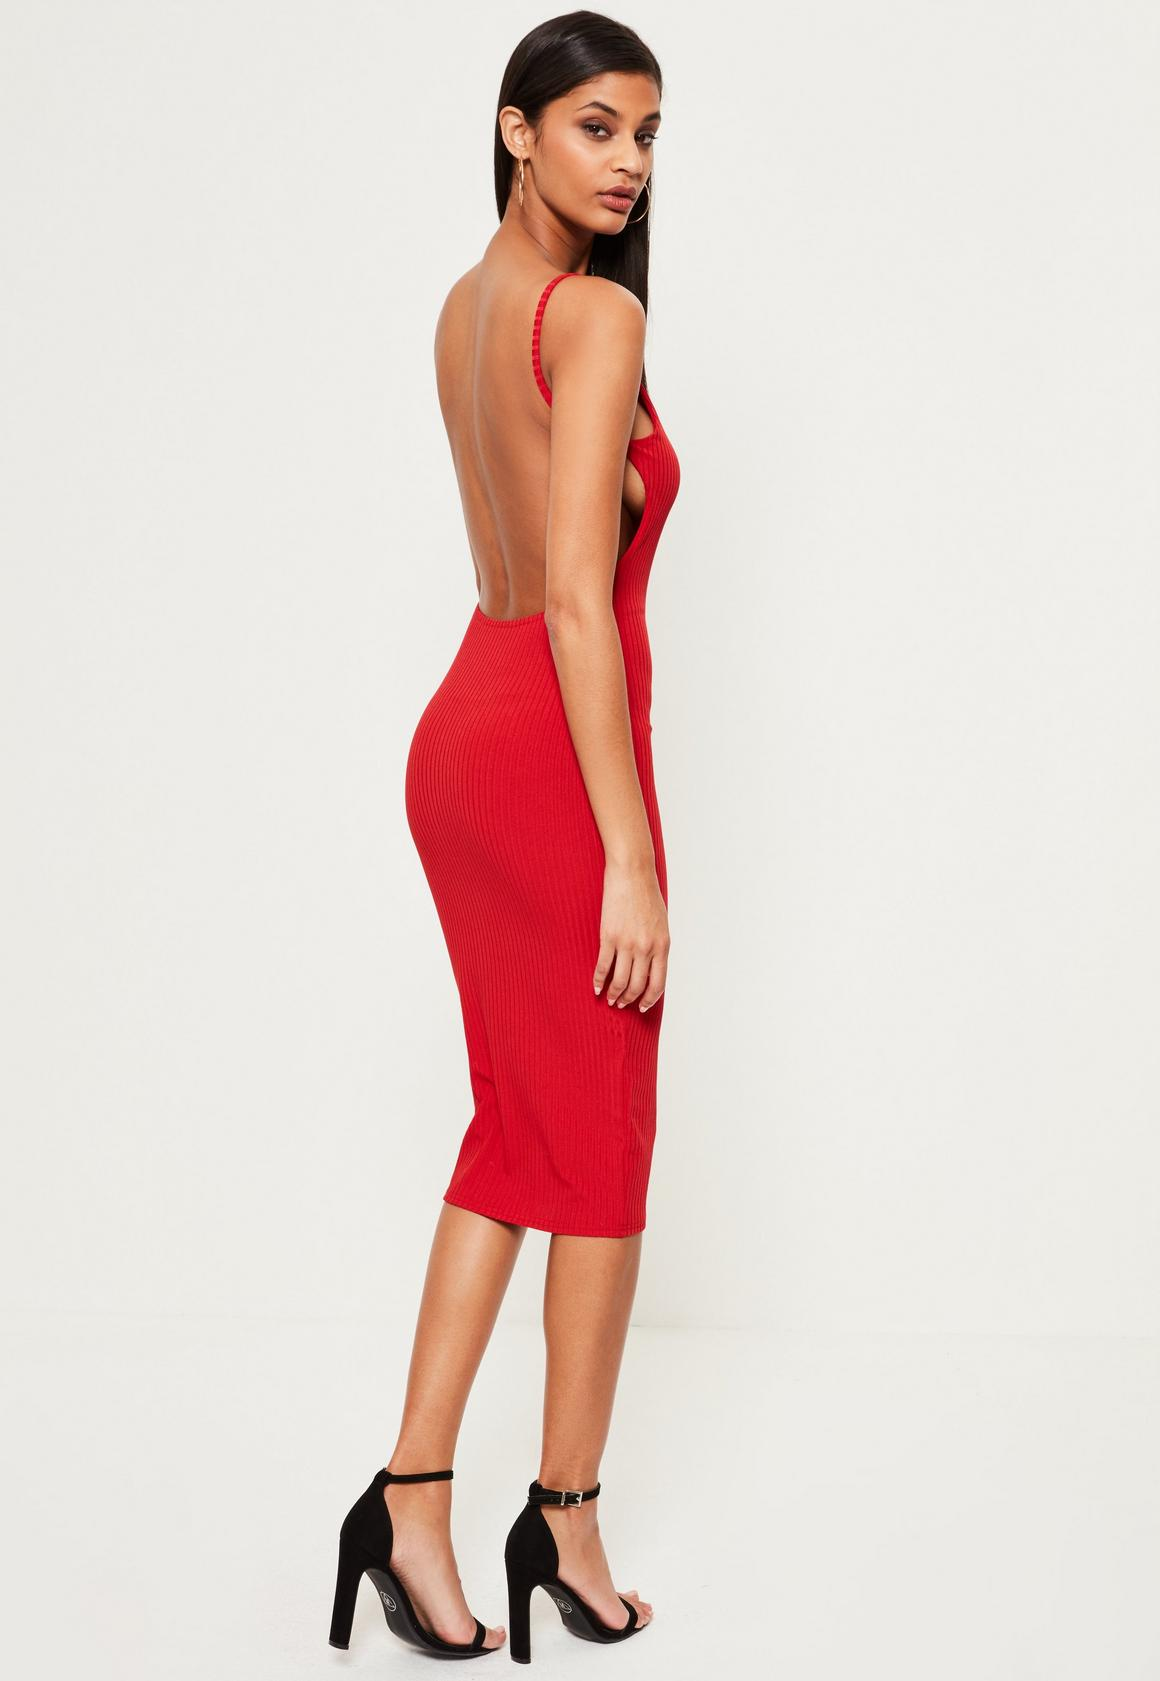 Backless Dress, Low Back Dresses | Missguided